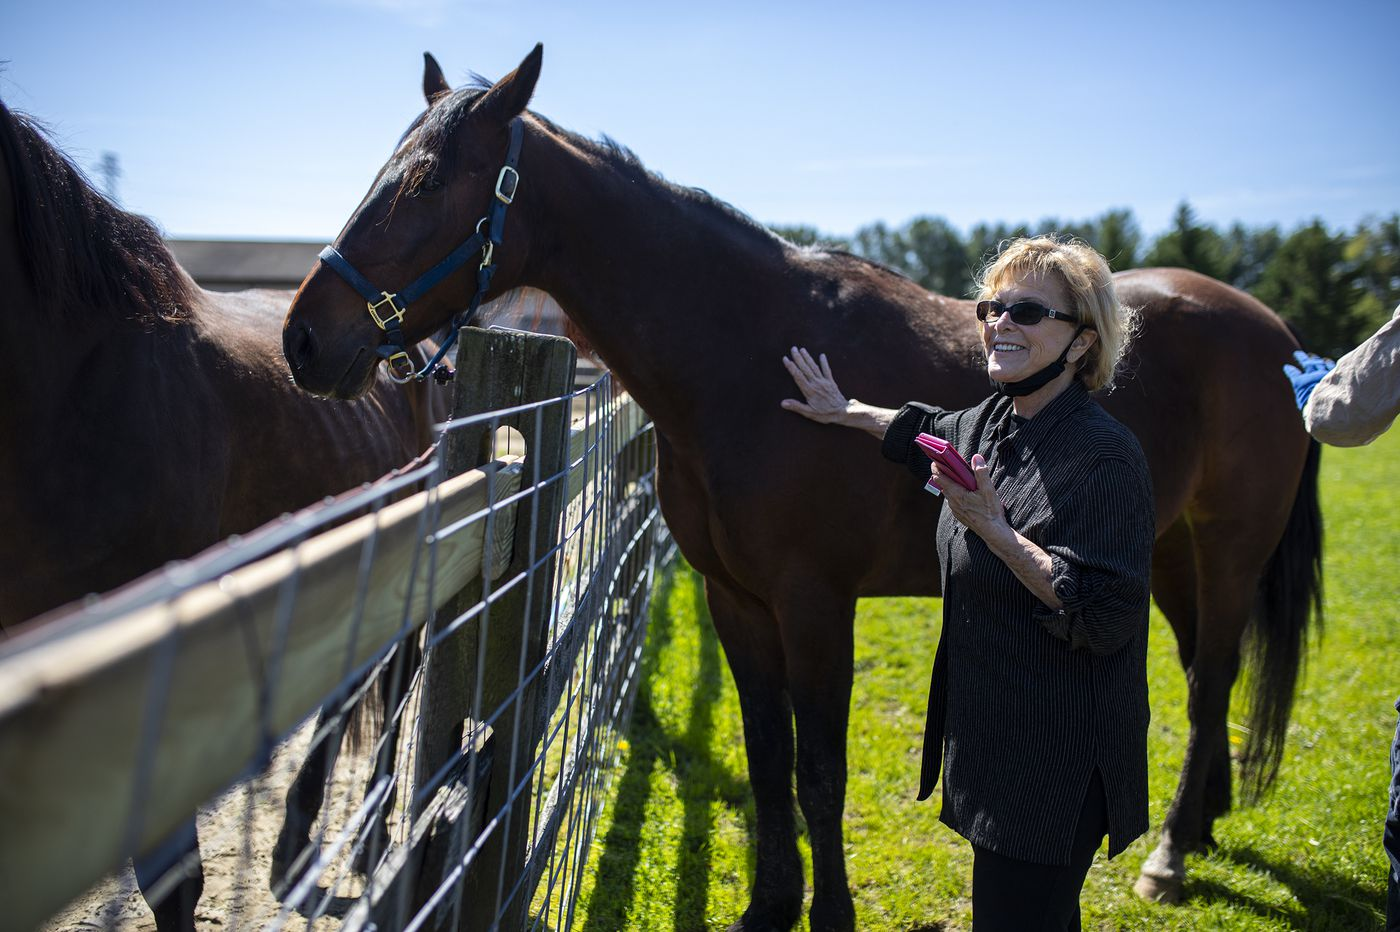 Philadelphia-area horse rescues are struggling amid the coronavirus